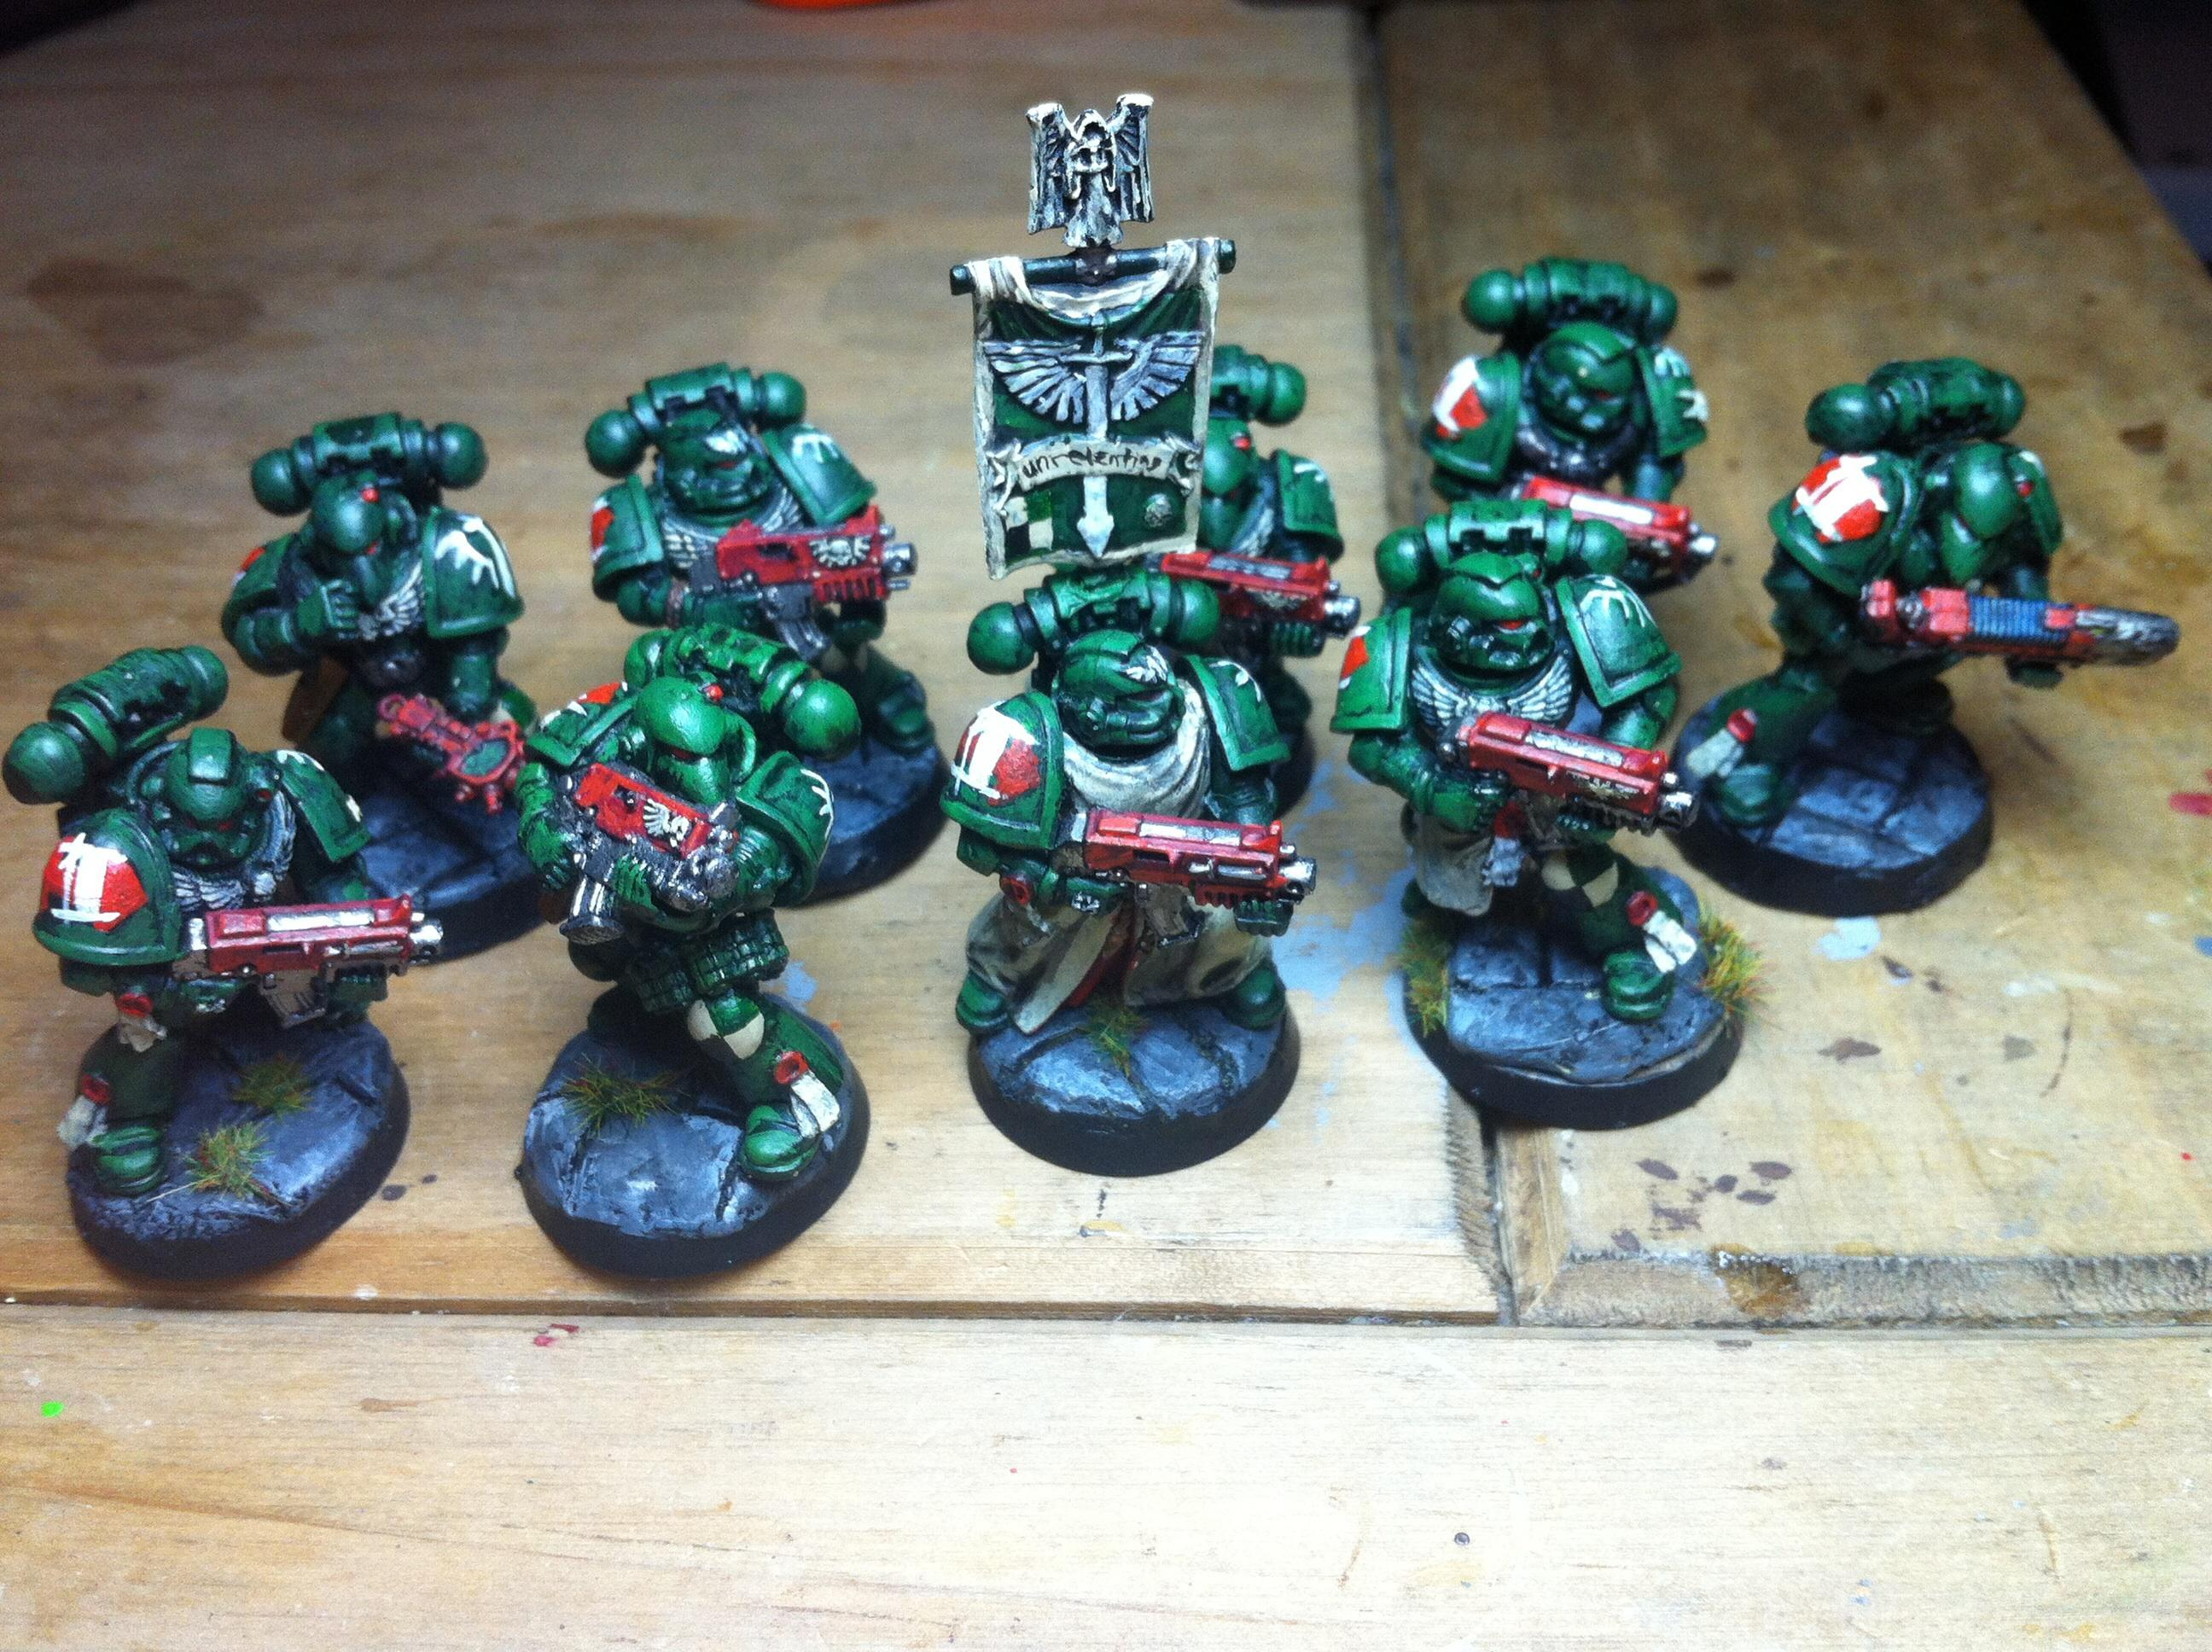 5th Company, Bolter, Dark Angels, Imperial, Imperium, Lbsf, Mankind, Painted, Power Armour, Space, Space Marines, Tactical Squad, Warhammer 40,000